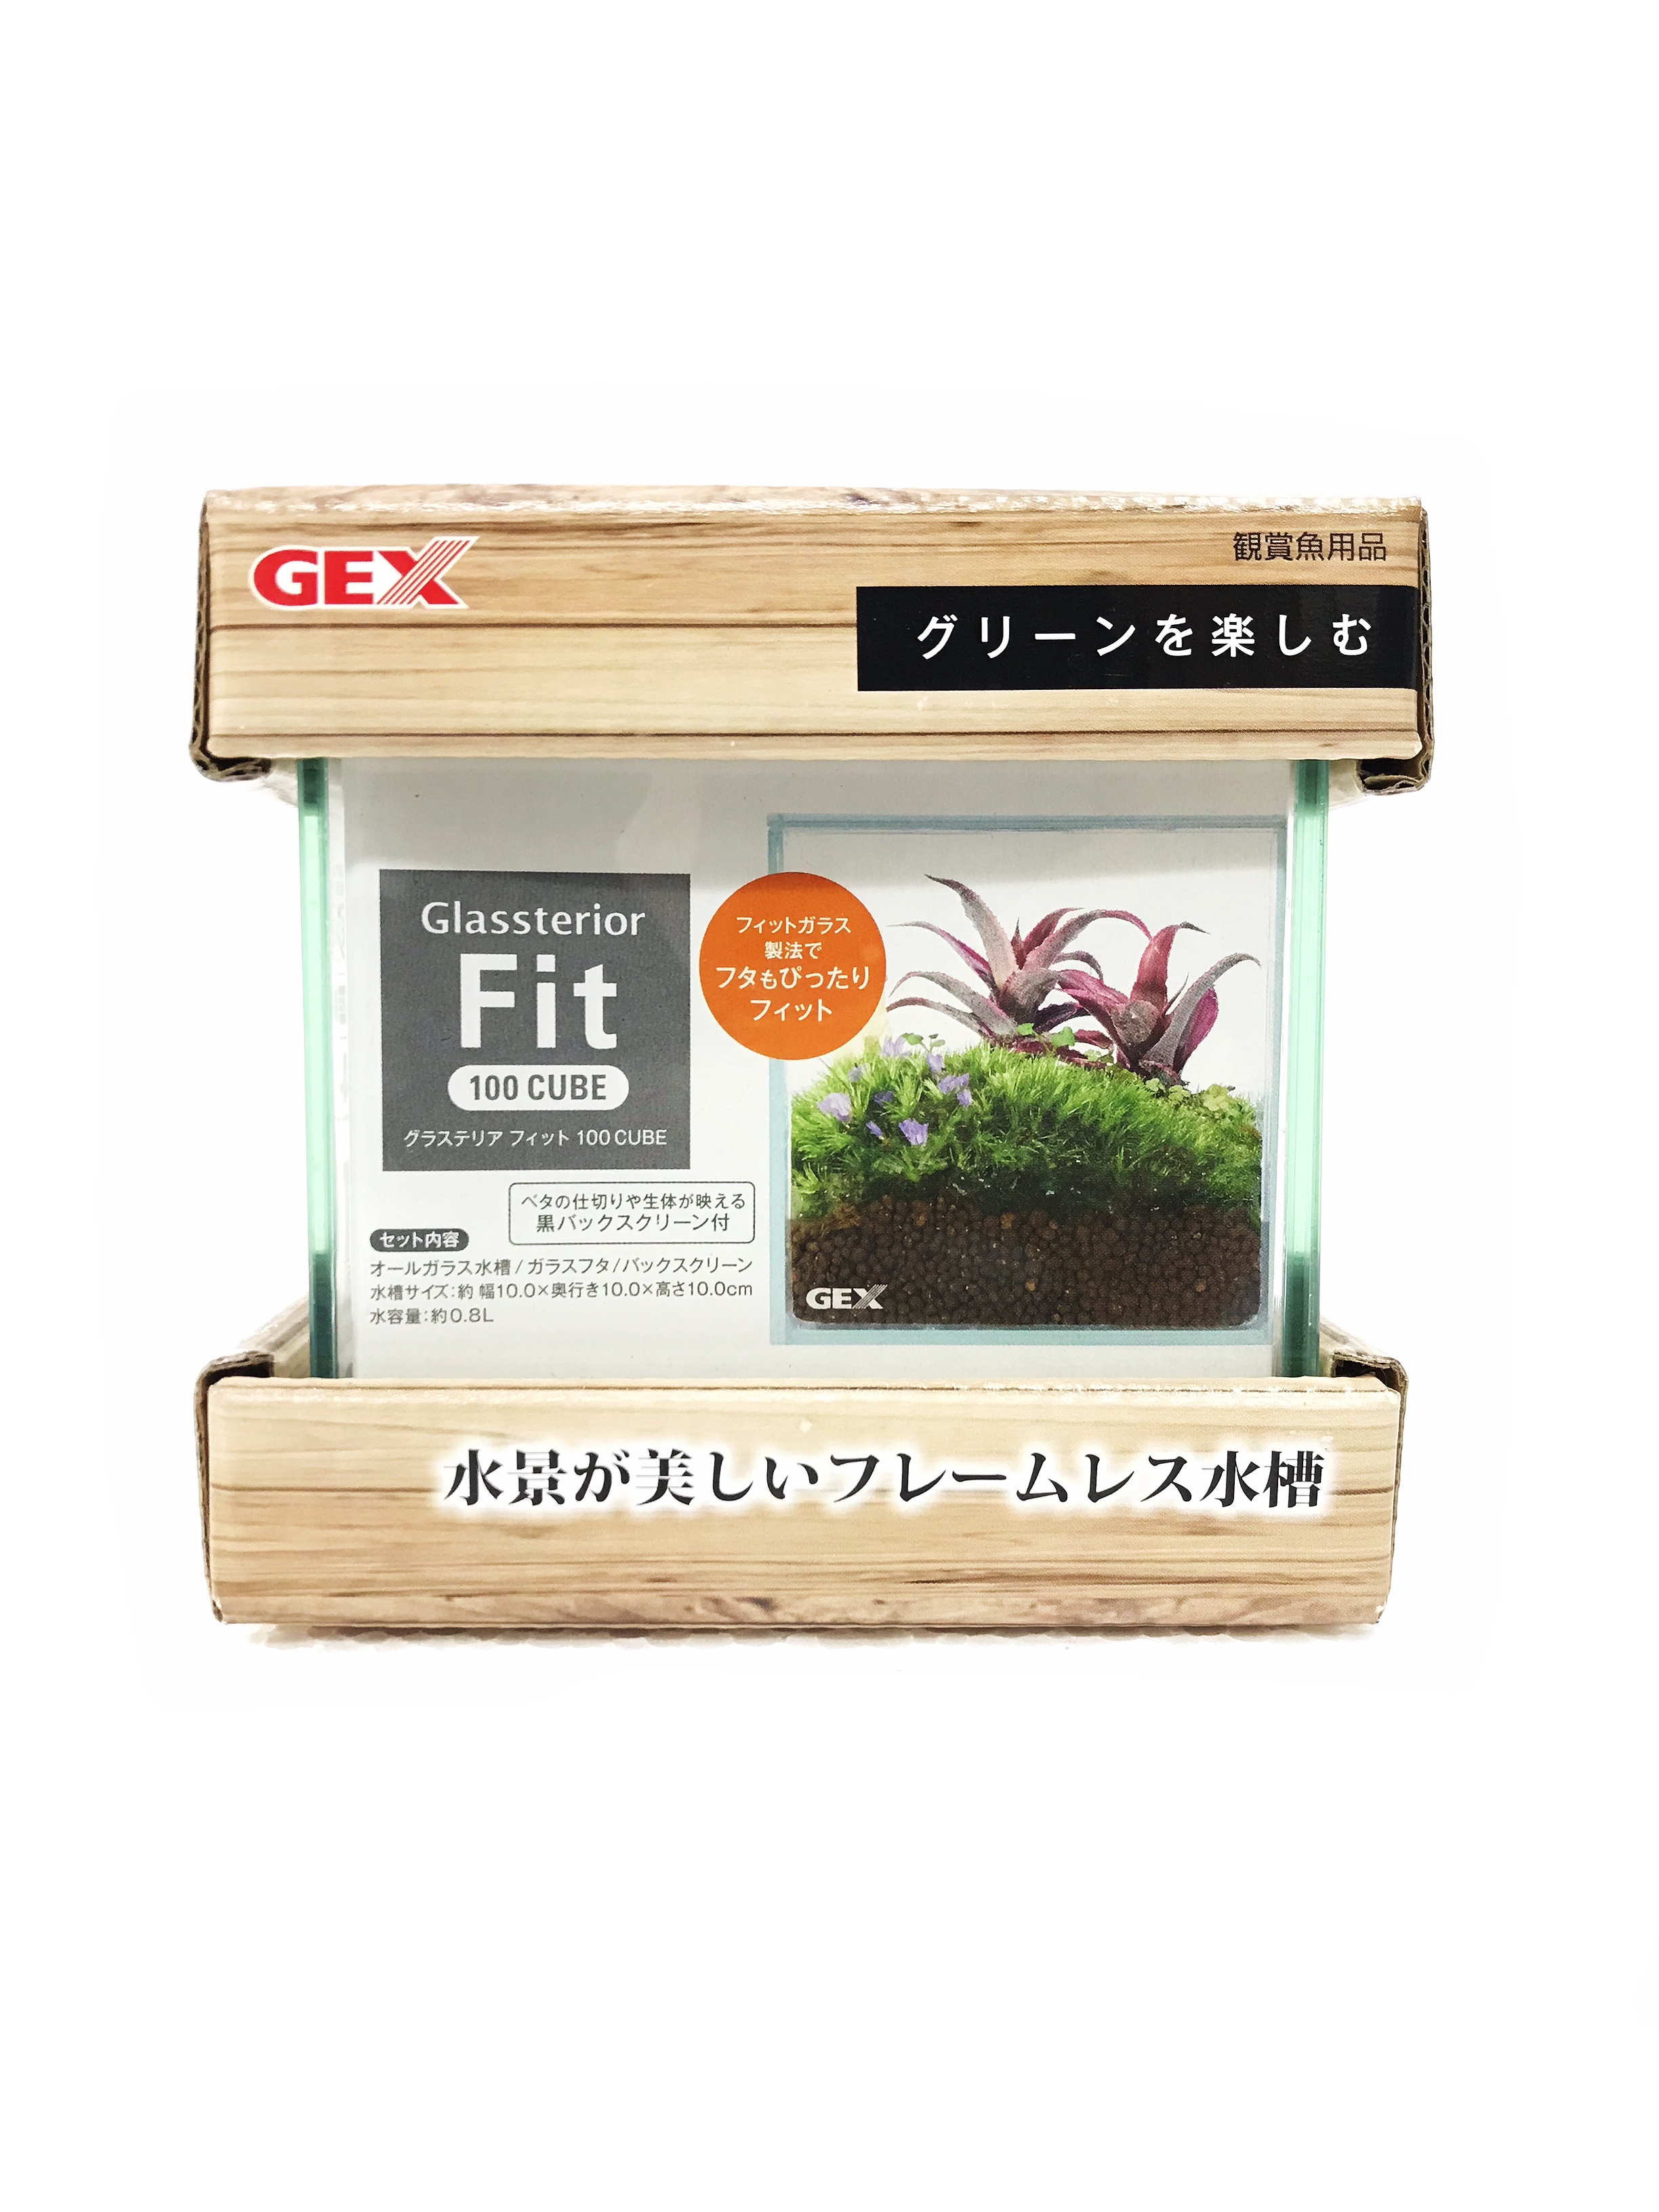 Gex Glassteria Fit 100 Cube (8624)